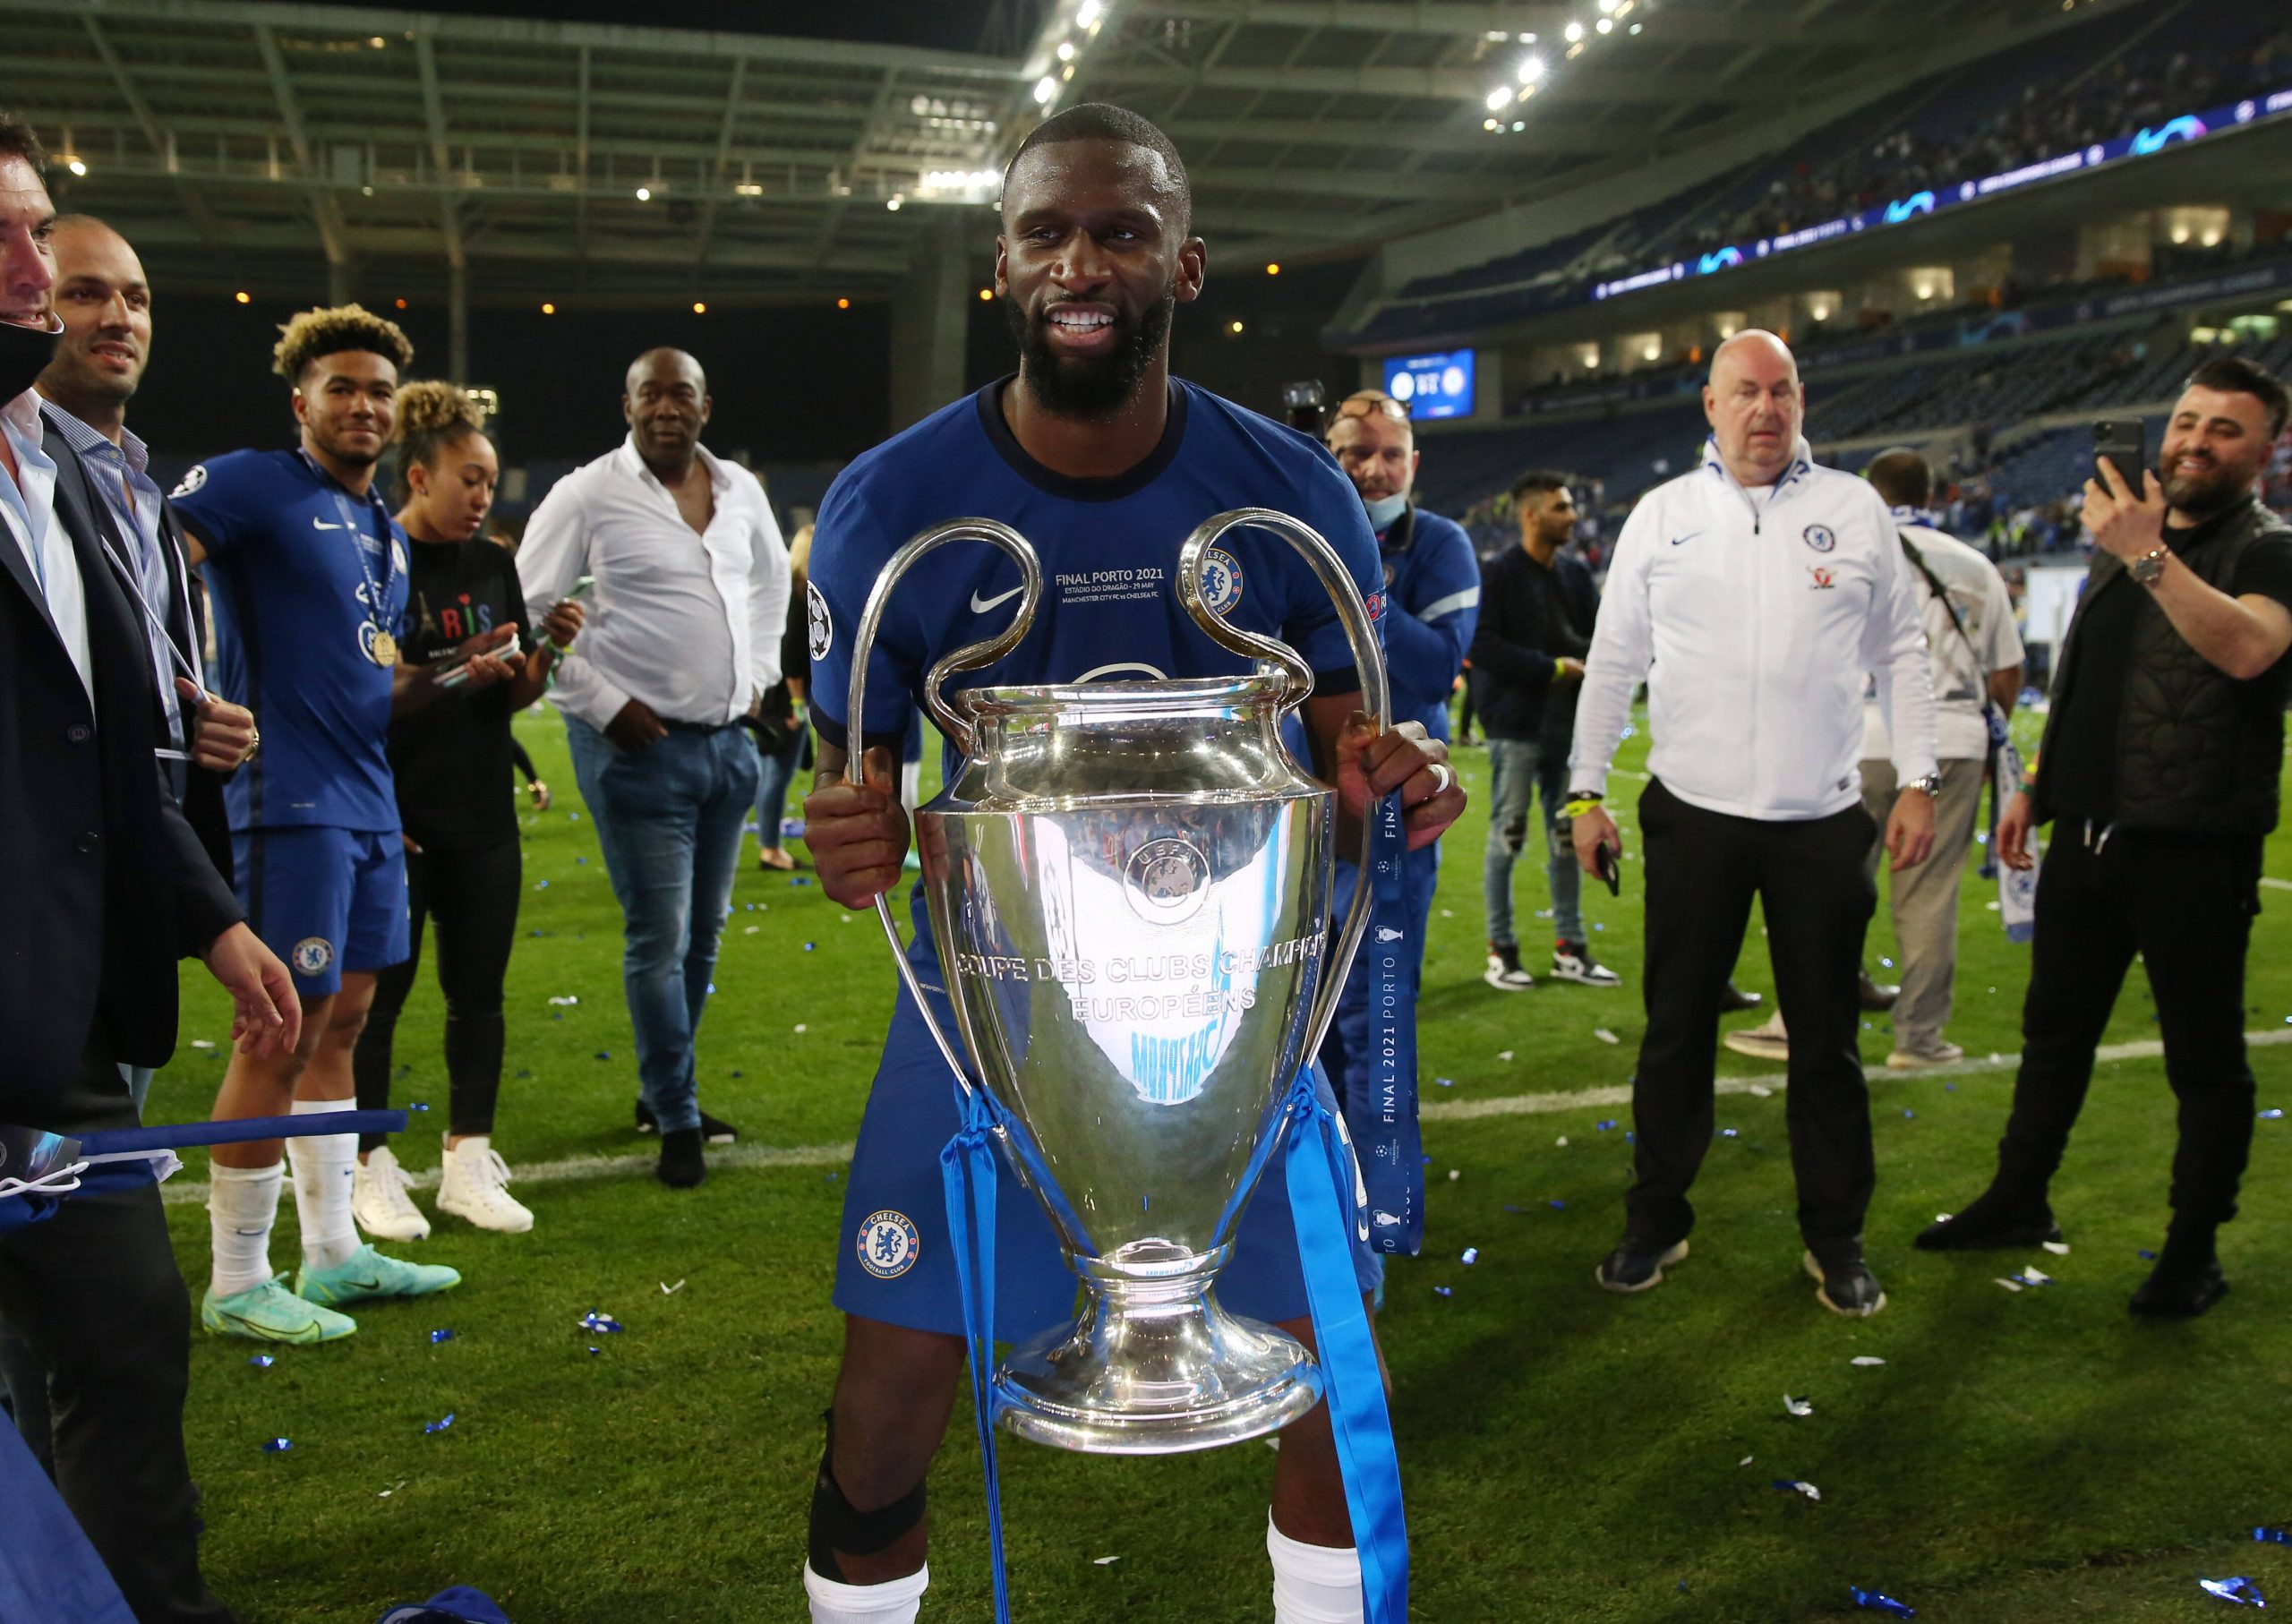 Antonio Rudiger played a key role in Chelsea's Champions League triumph (imago Images)